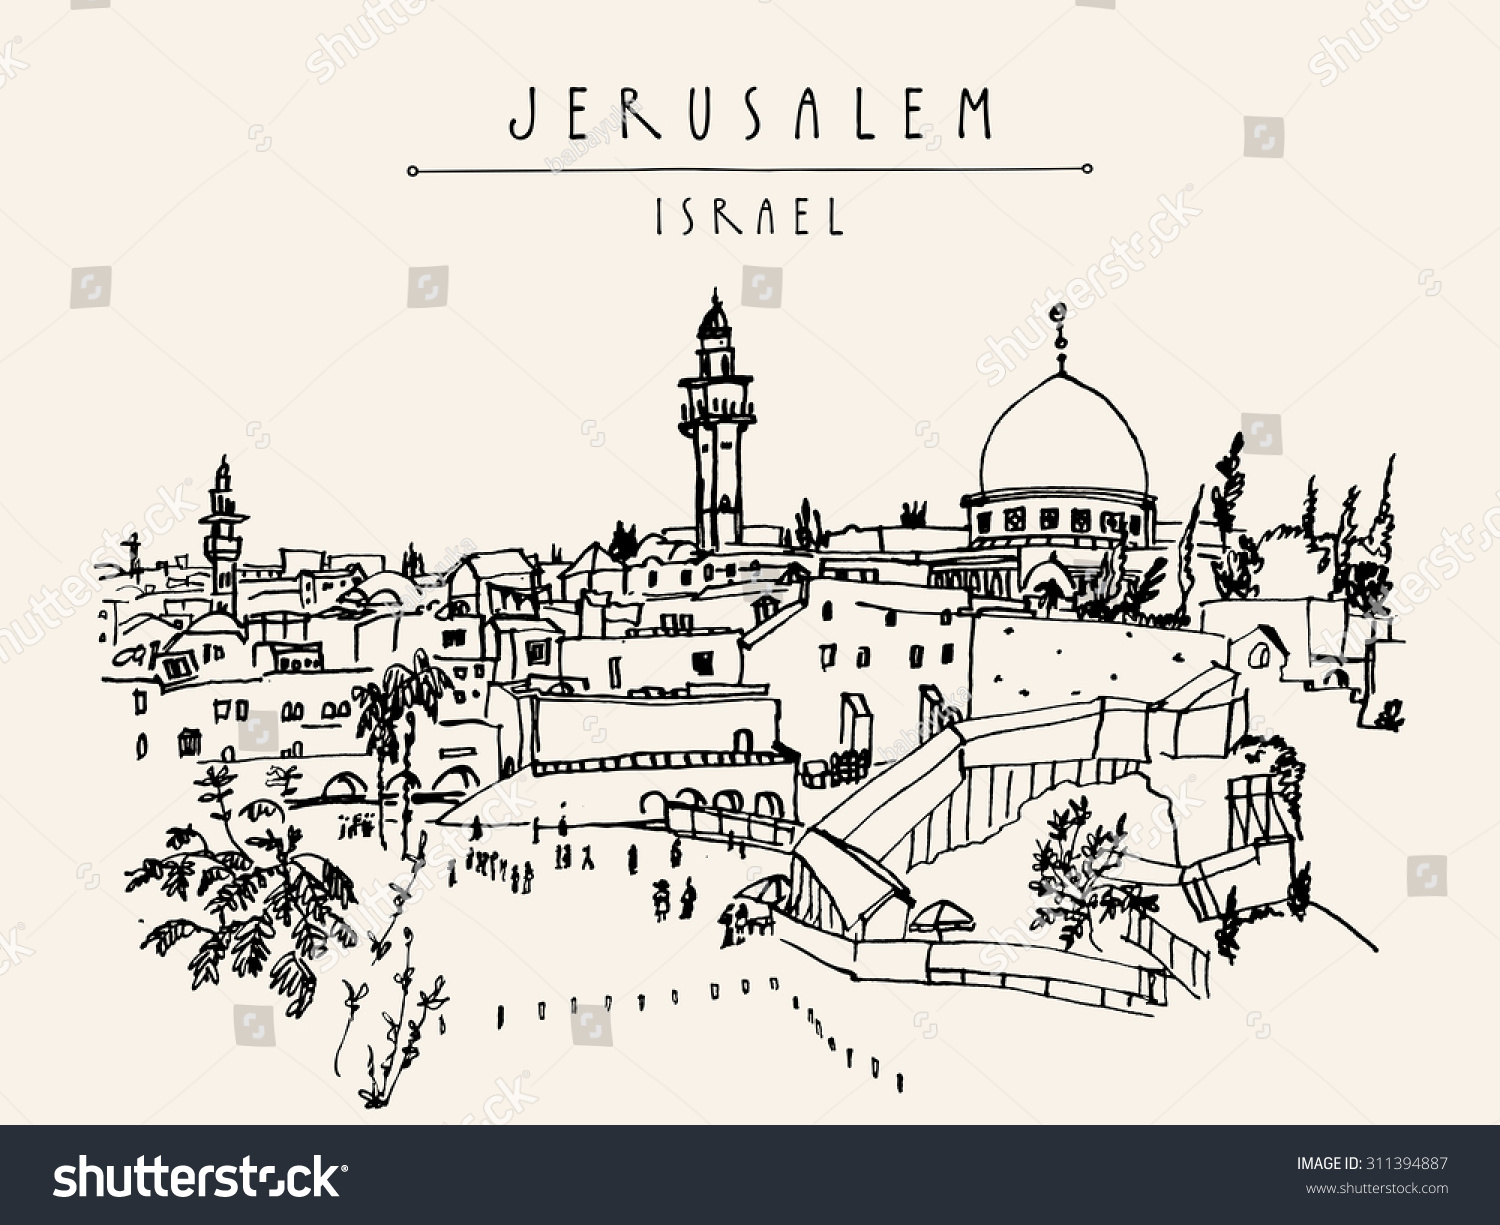 city of jerusalem coloring pages - photo#11